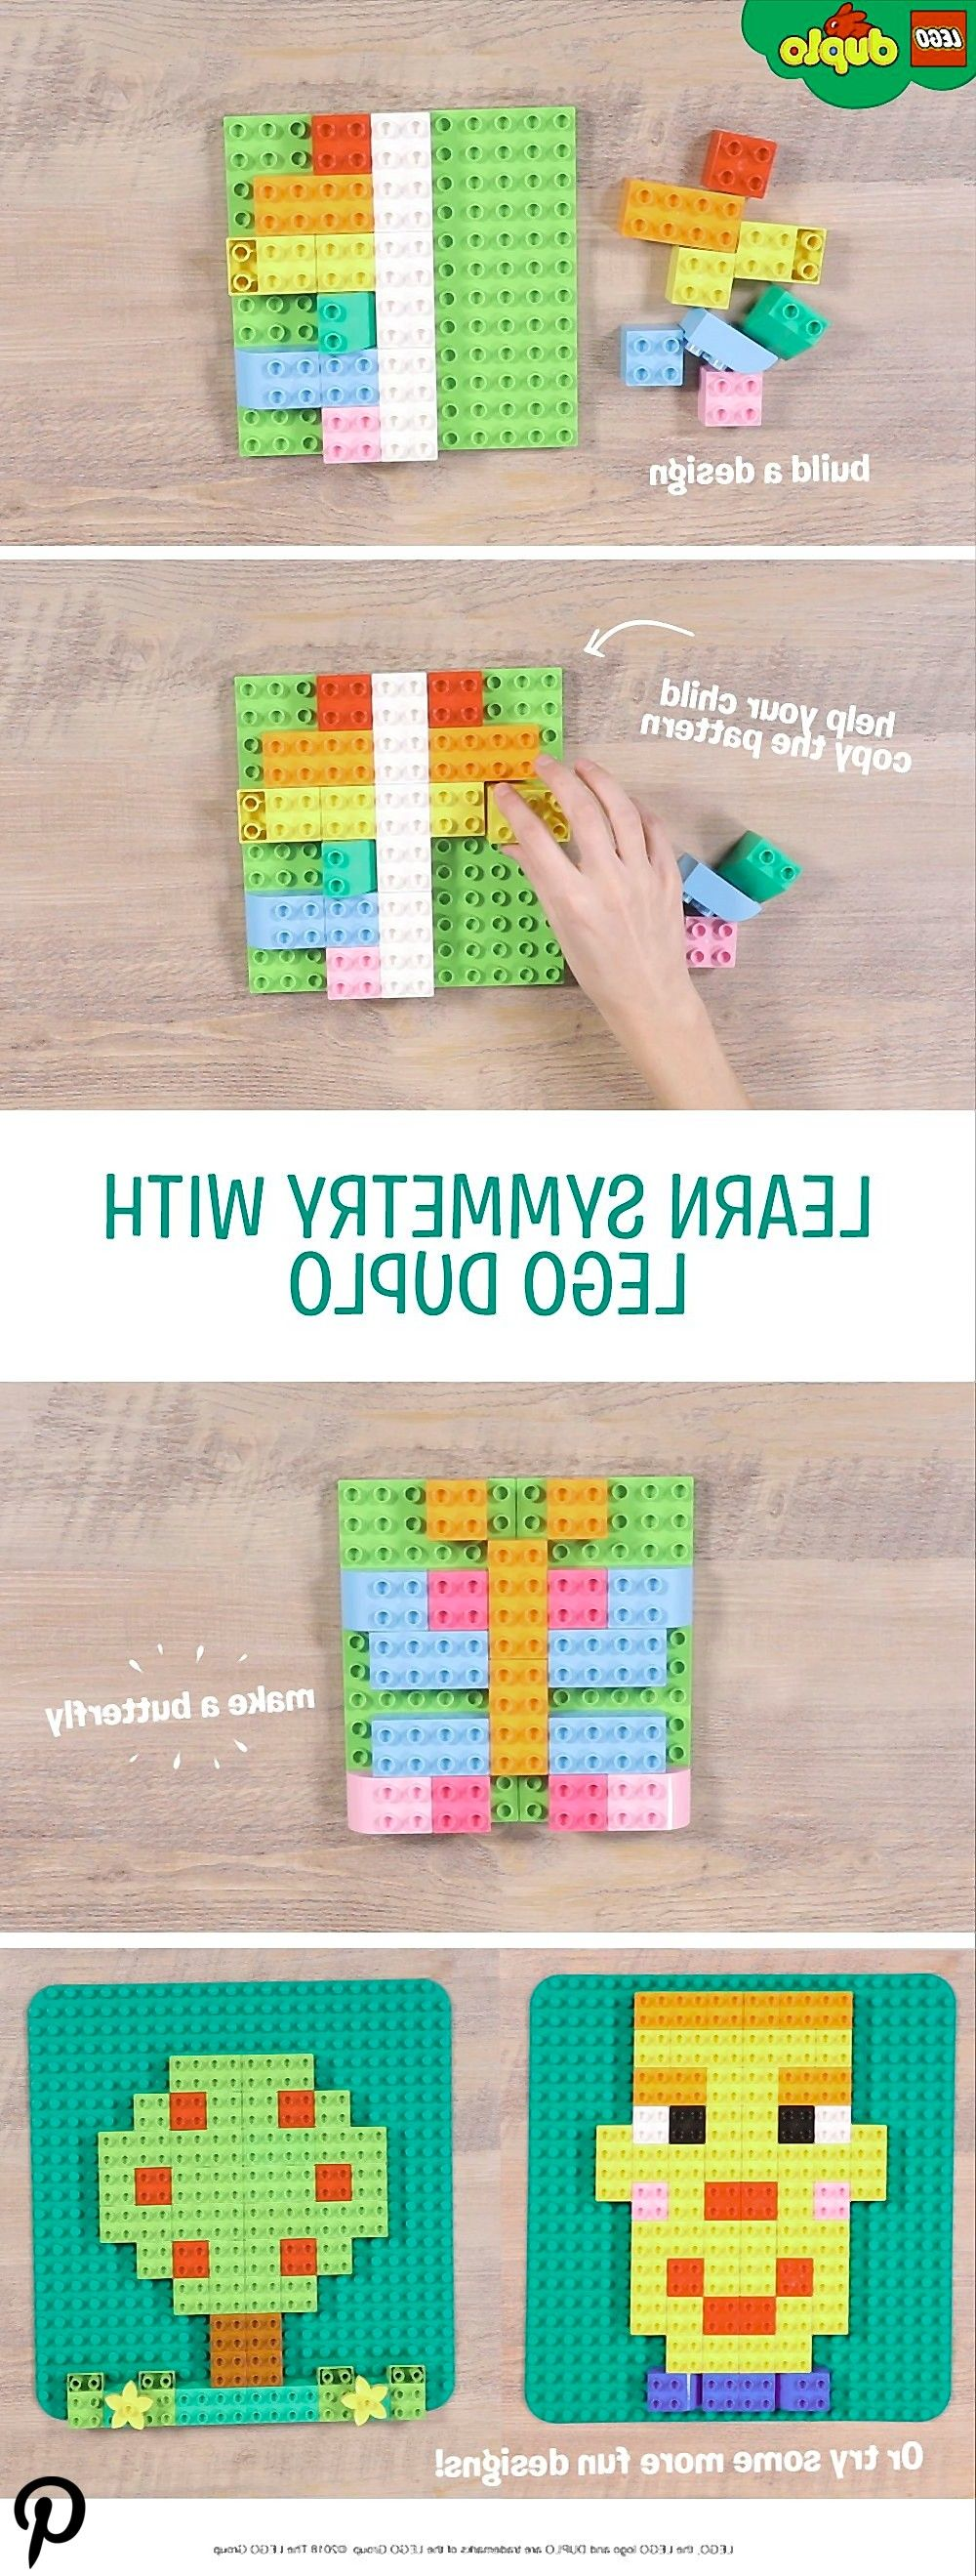 Teach your child about symmetry with this fun and creative copying game. Use LEGO DUPLO baseboards a Teach your child about symmetry with this fun and creative copying game. Use LEGO DUPLO baseboards and bricks to build a pattern coveri…